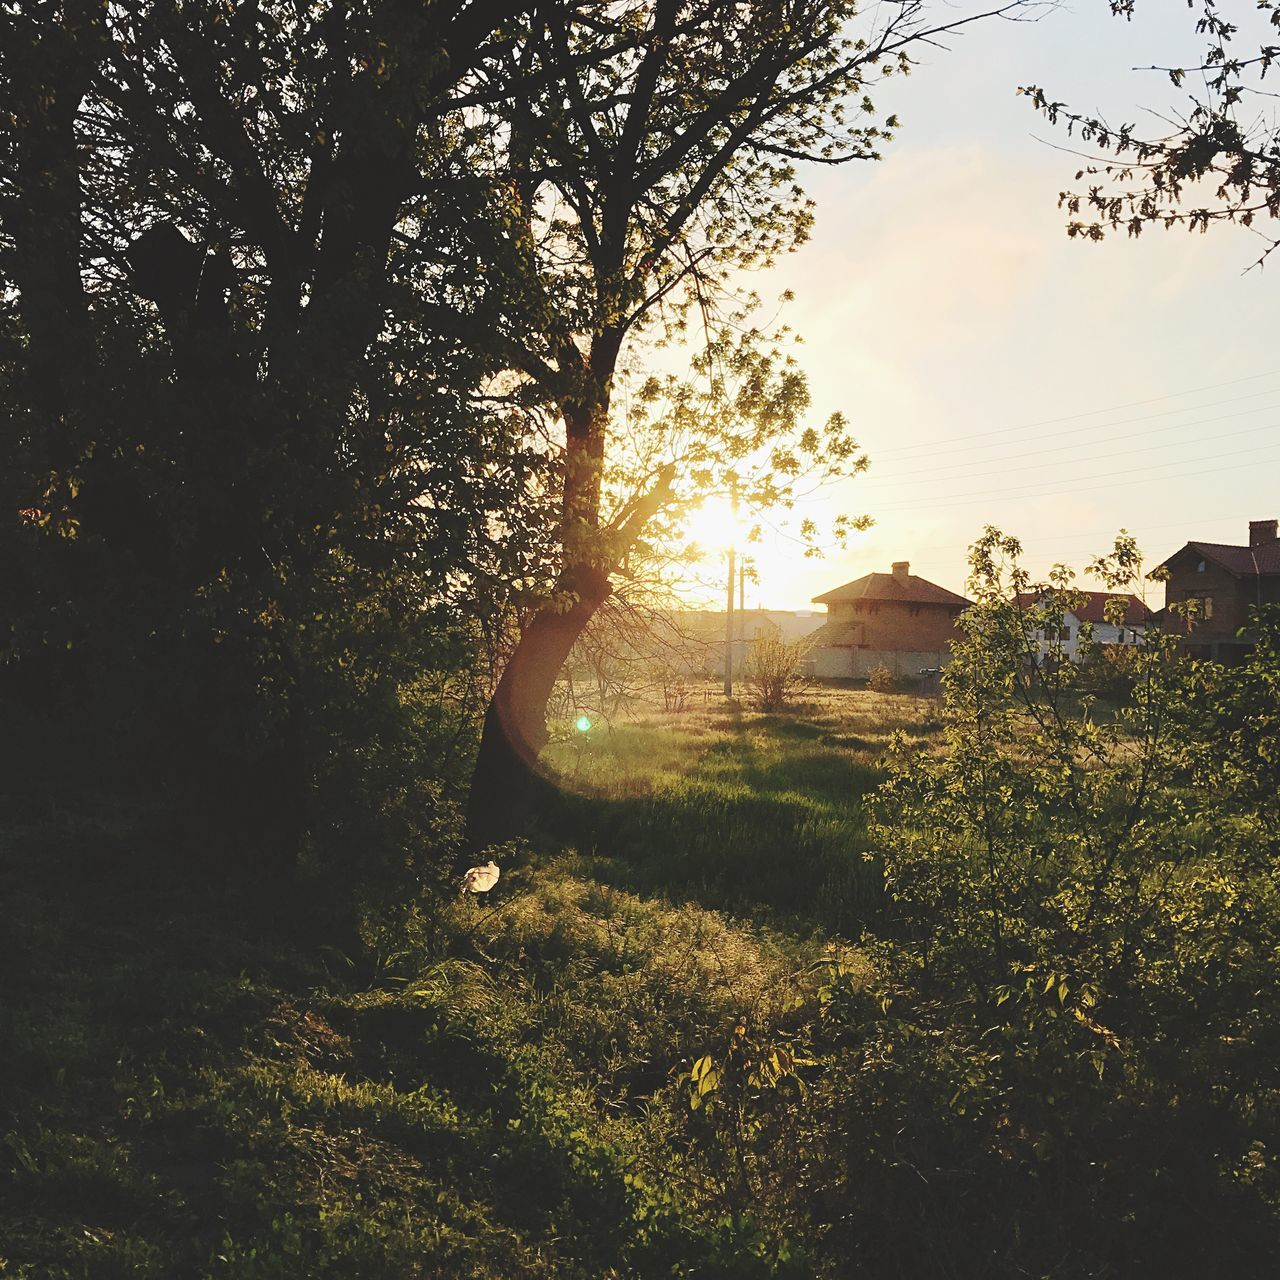 tree, nature, sunlight, built structure, outdoors, no people, tranquil scene, growth, sunset, beauty in nature, tranquility, architecture, building exterior, plant, grass, sky, scenics, day